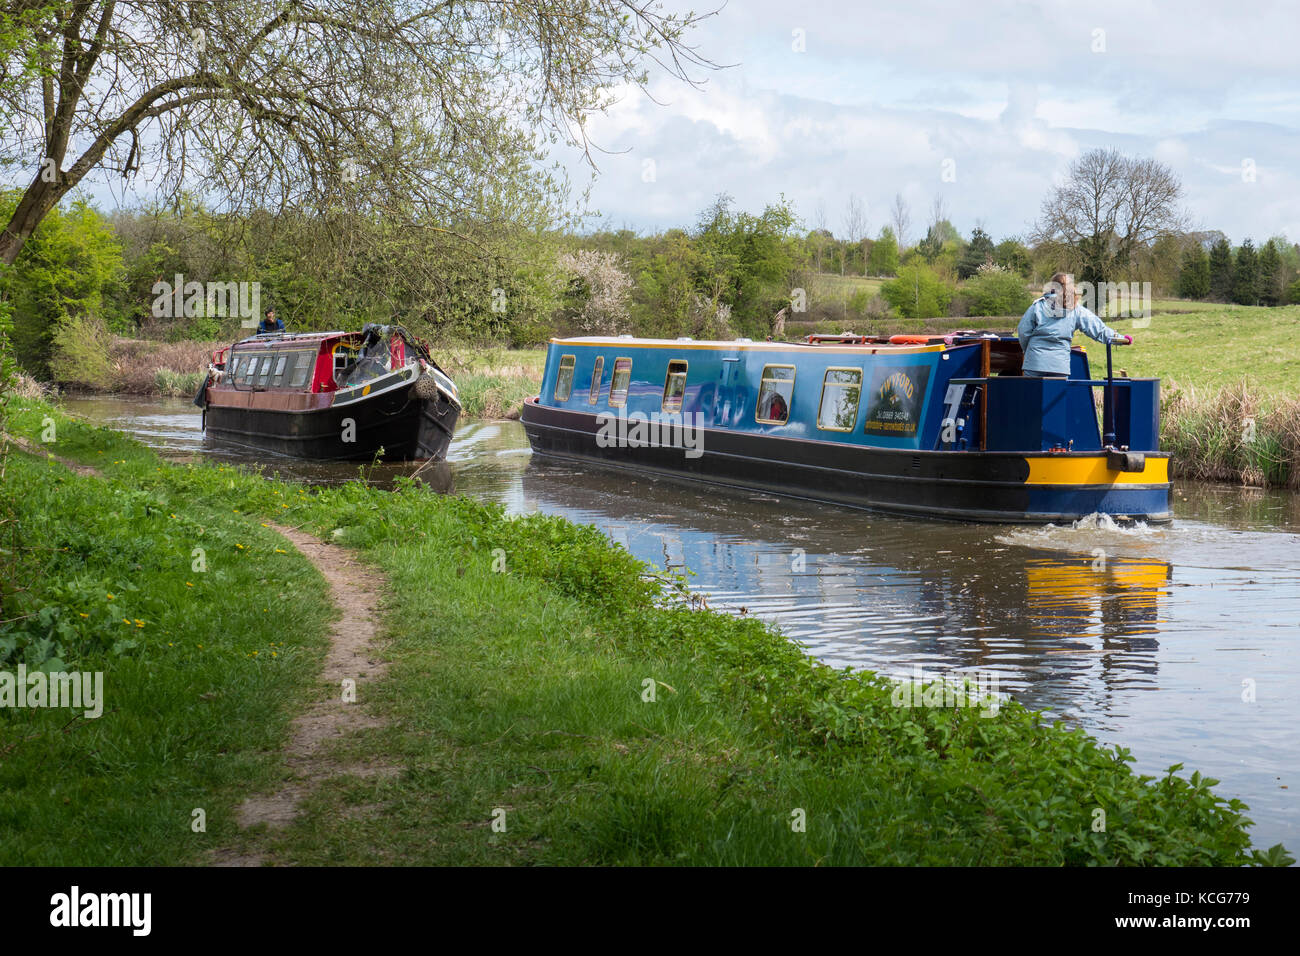 Canal boating Oxford Canal Oxfordshire England - Stock Image